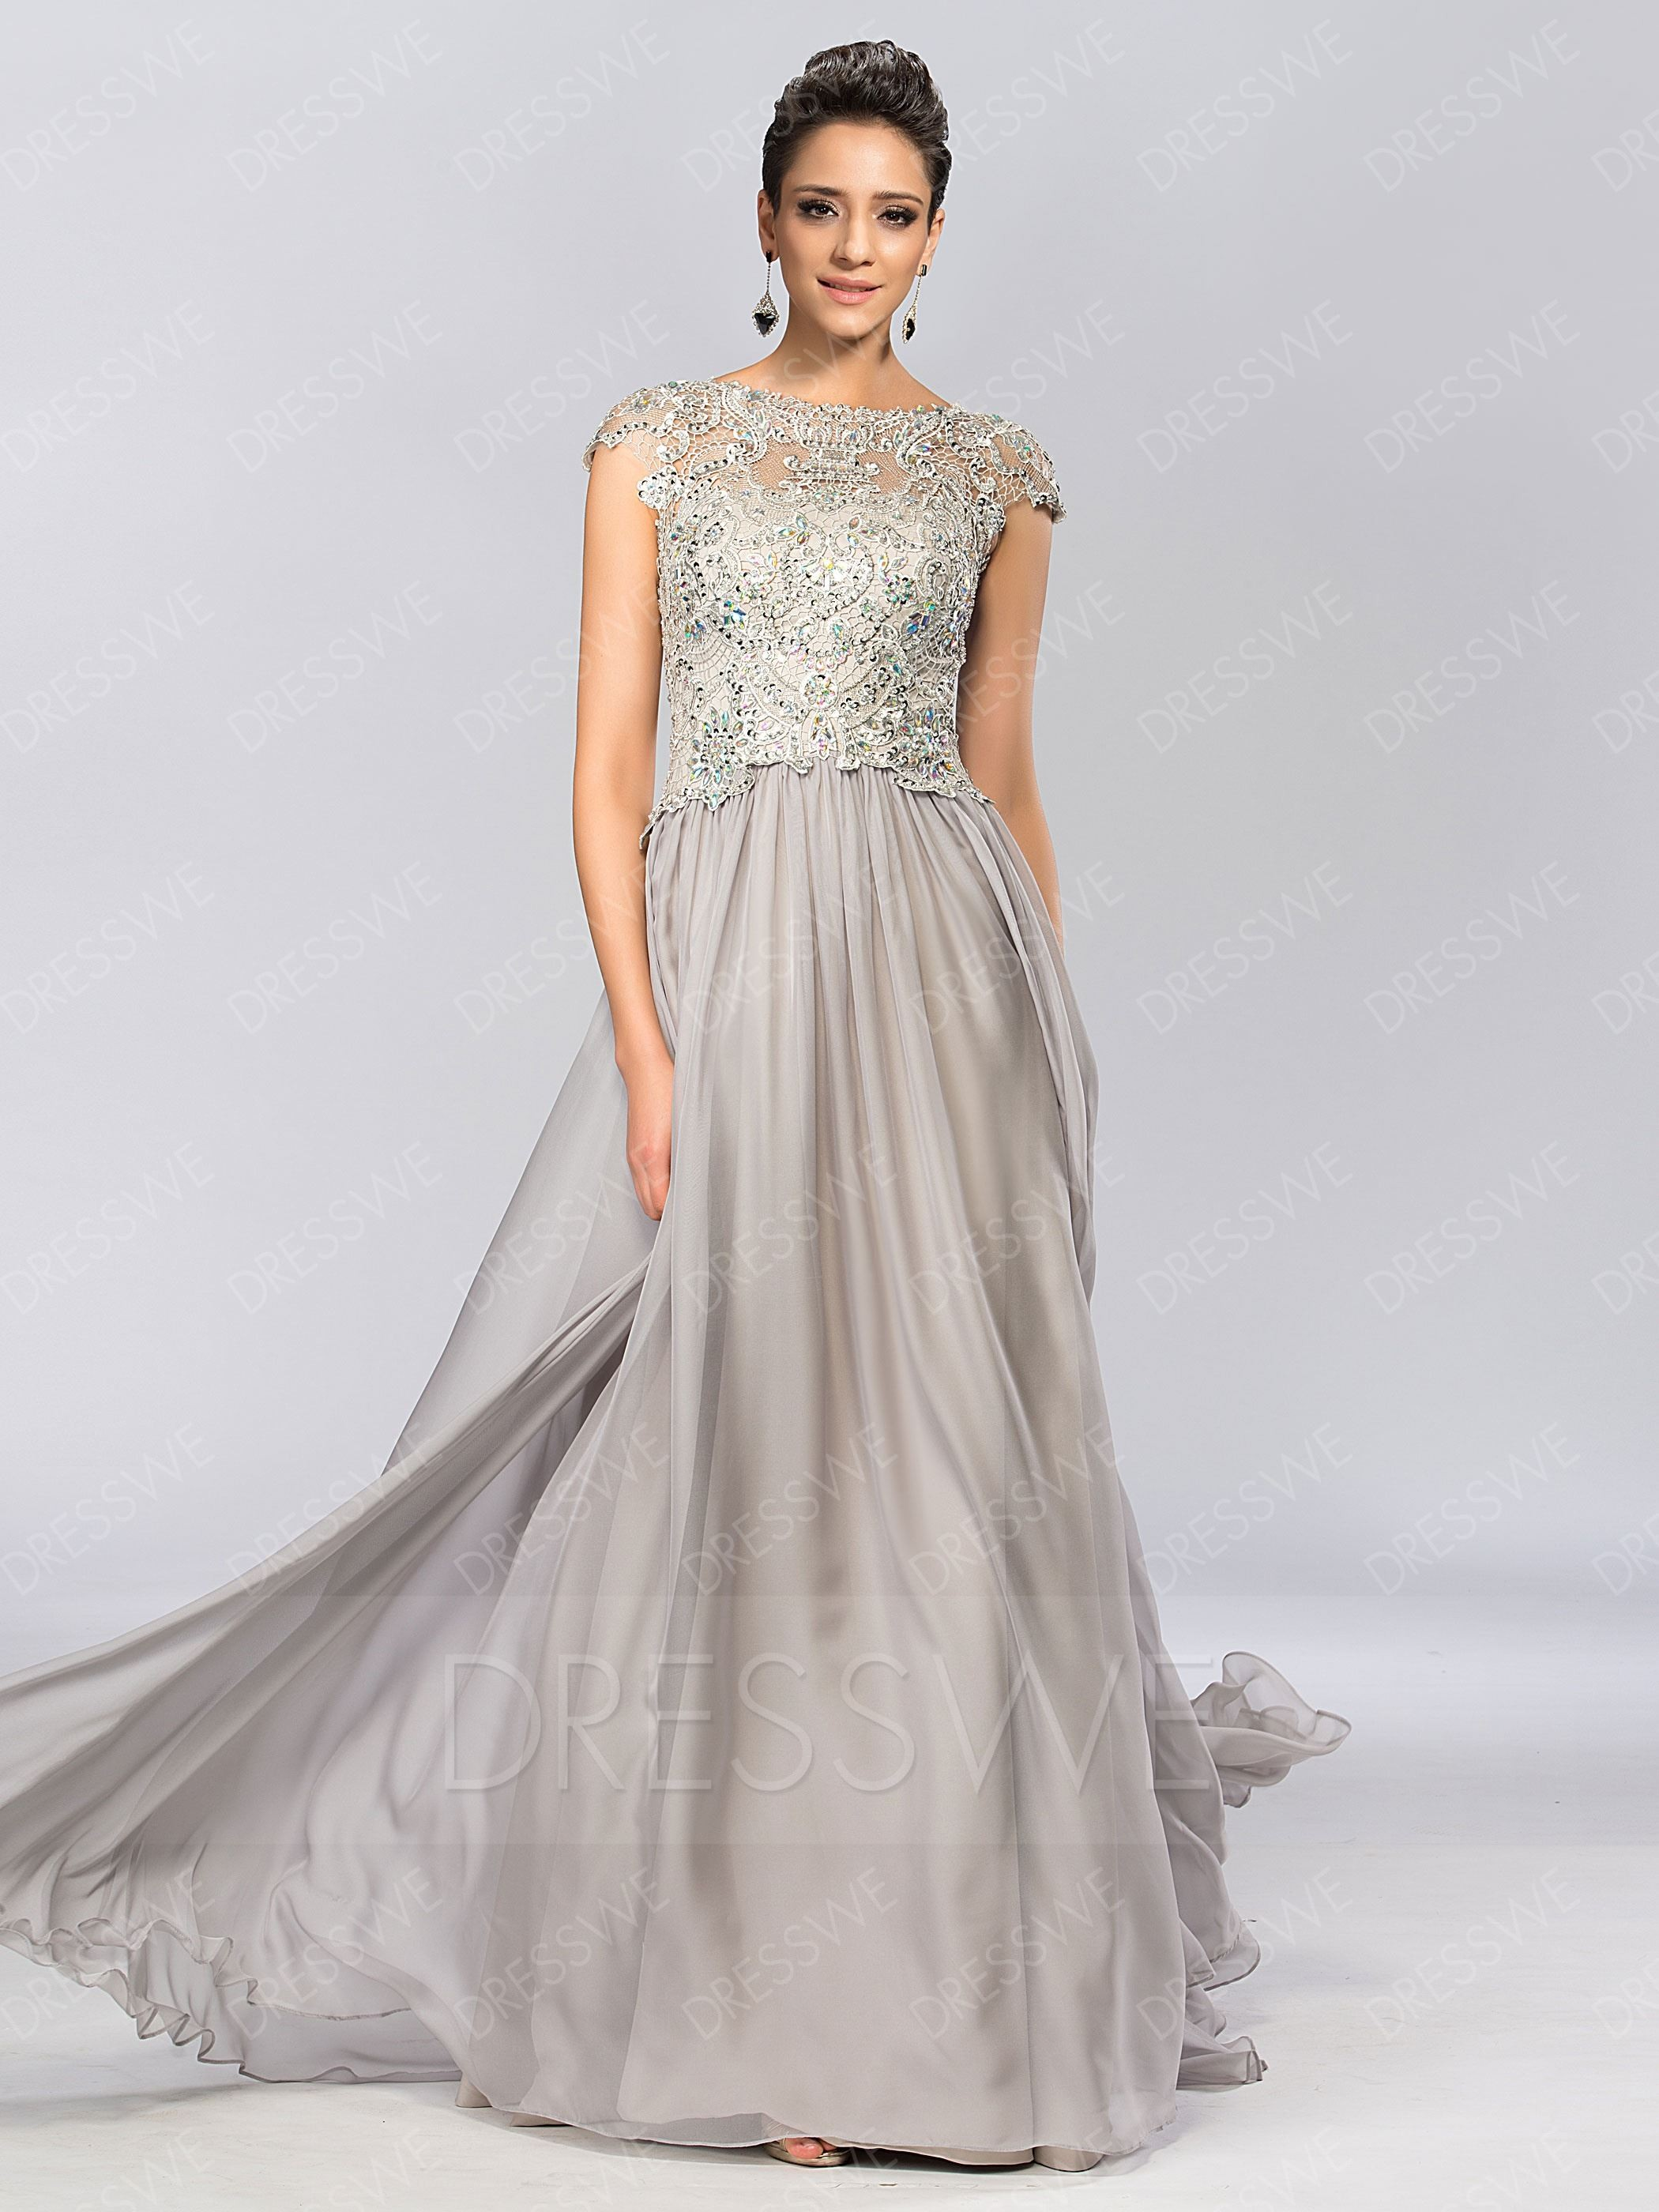 macys wedding dresses for mother of the bride photo - 1